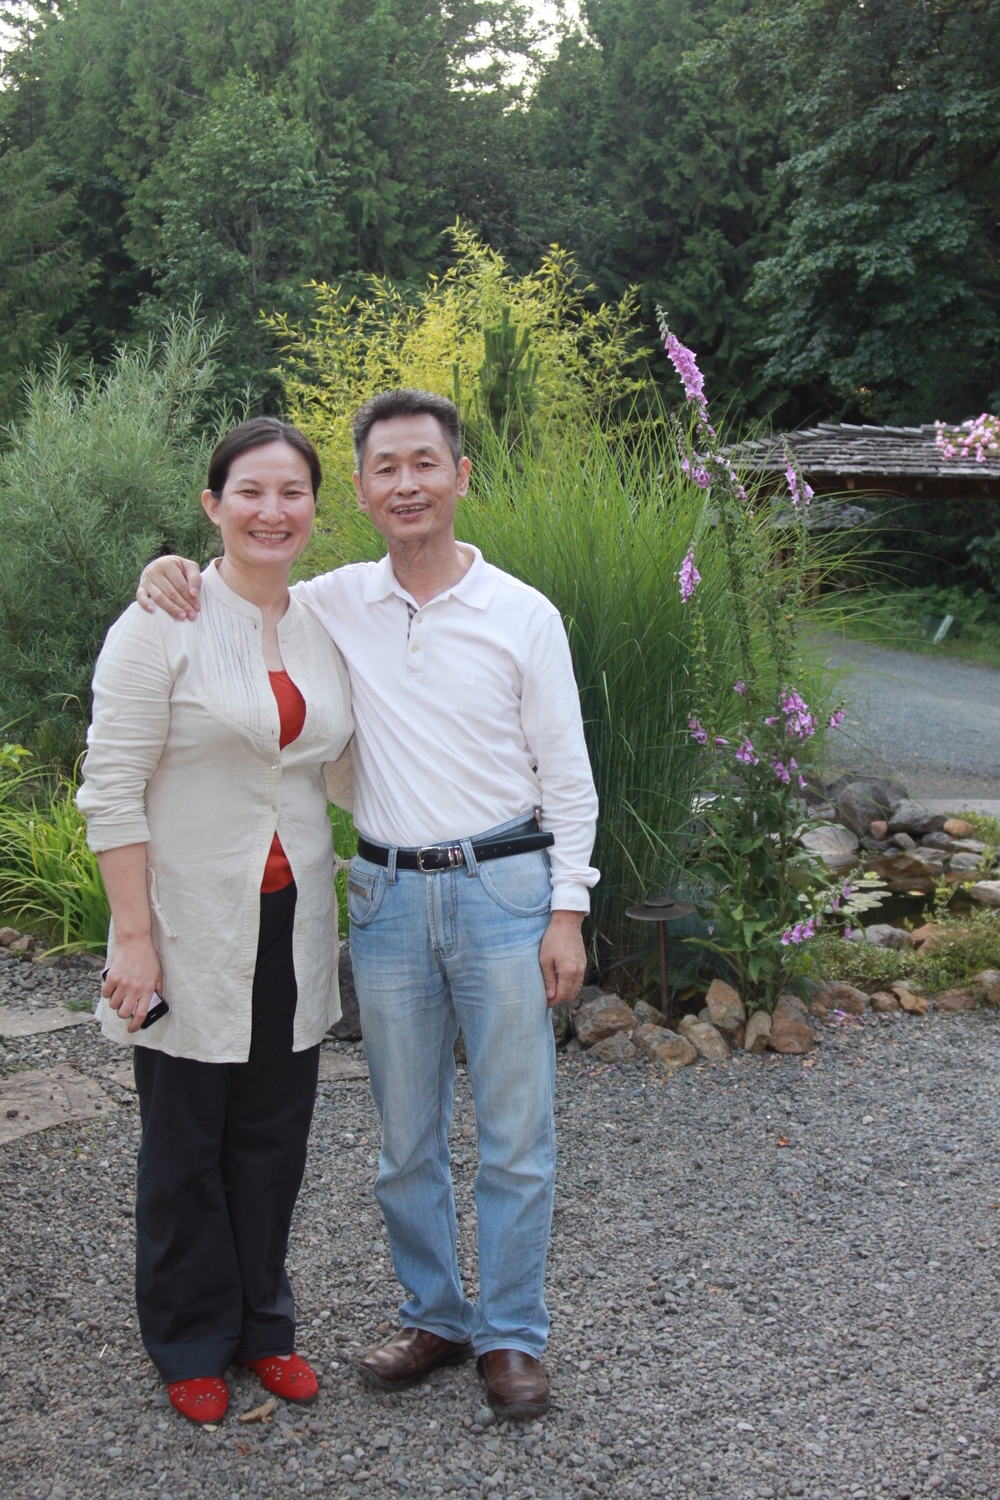 Drs. Liu and Zhao